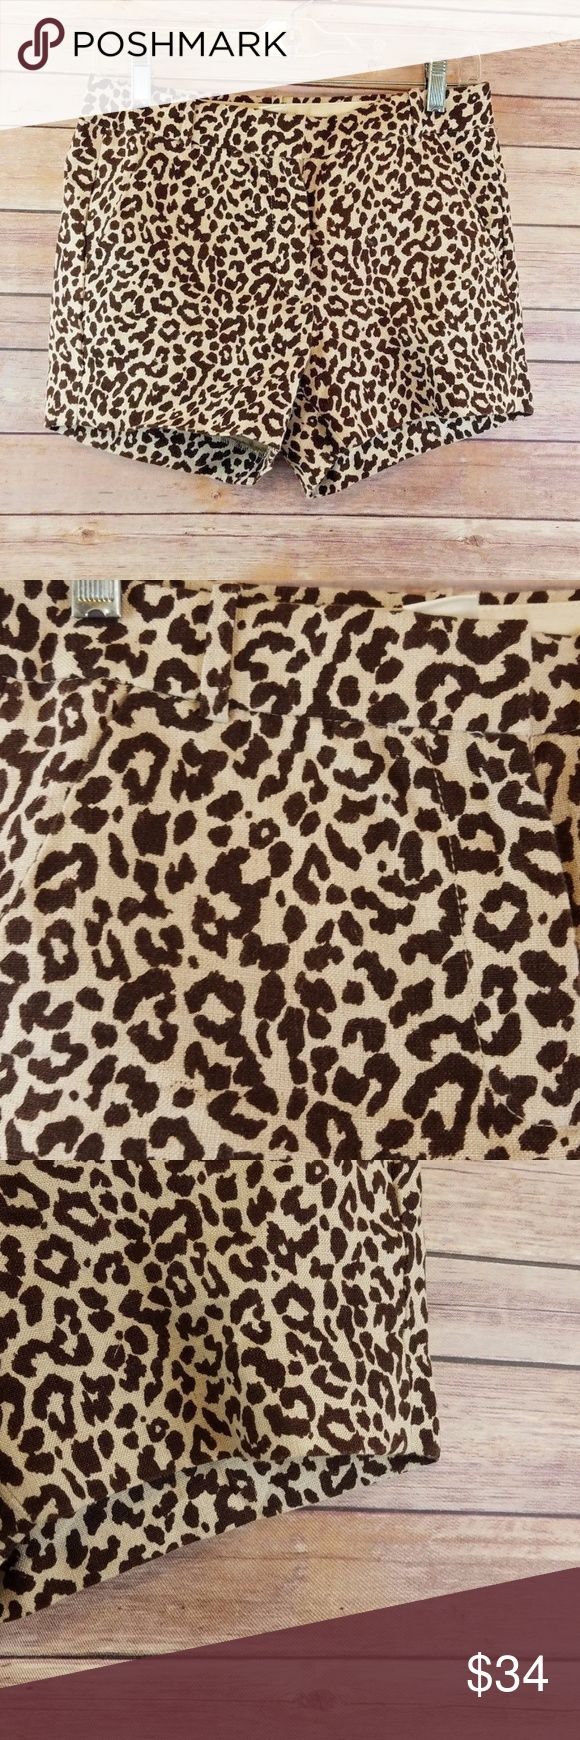 "J CREW Shorts Womens Size 2 Cheetah 100% Linen J CREW Shorts Womens Size 2 Safari Cat Leopard Cheetah Animal Print 100% Linen   Excellent used condition- no rips, stains, smoke free home. Hip to hip: 15"" Length: 3.5"" Inseam: 13.5"" J. Crew Shorts"